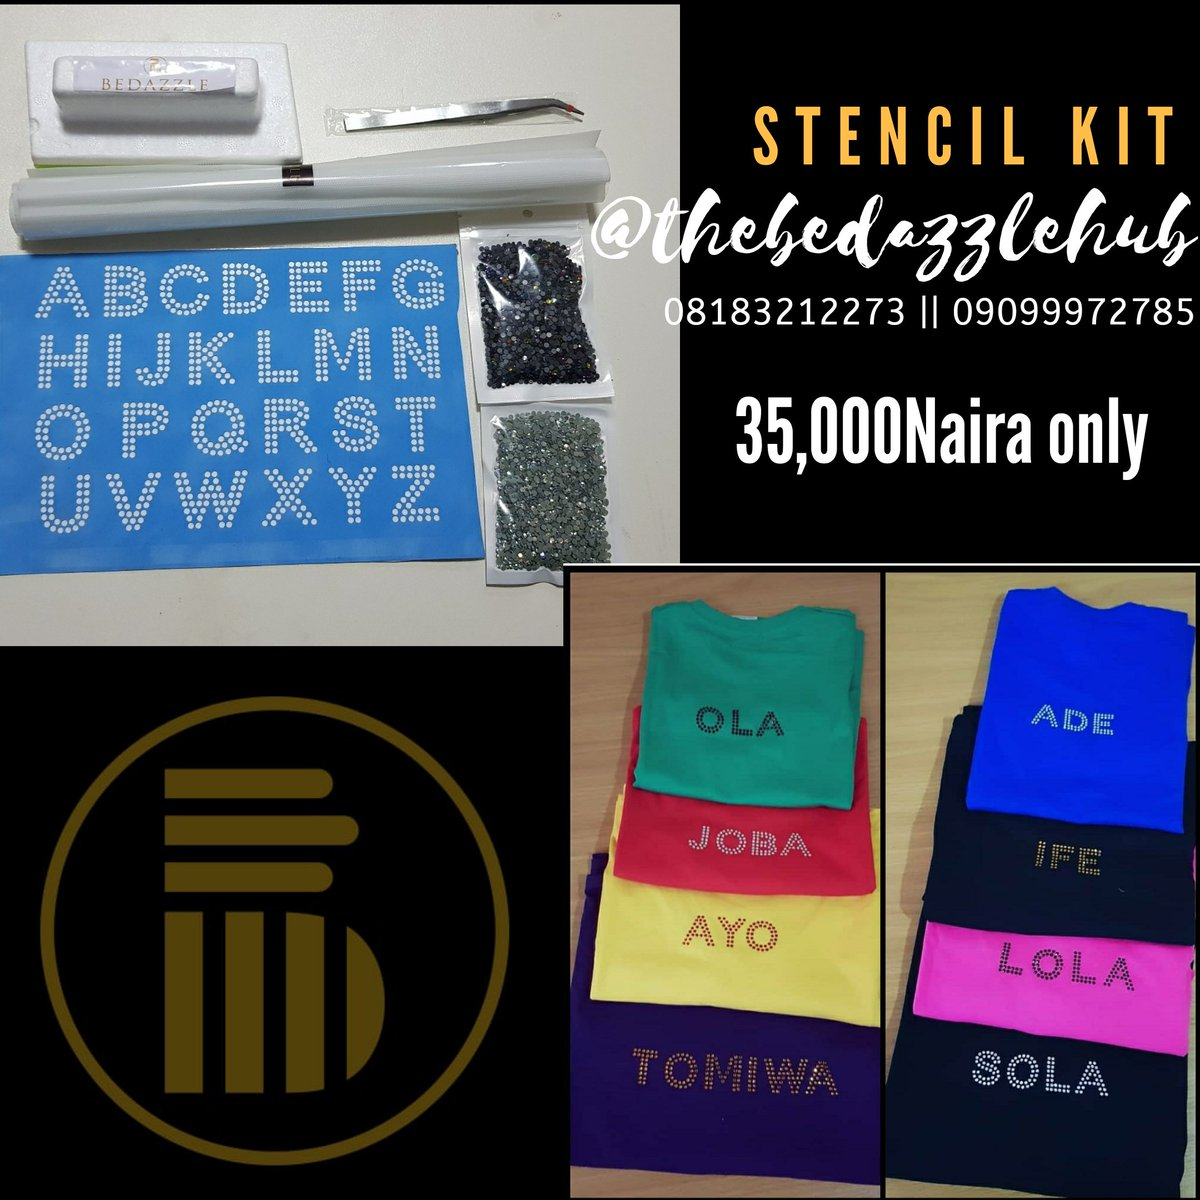 This stencil kit is exactly what you need to start designing words/Lettering on tshirts and other fabric surfaces. We also offer you a one on one online tutorial on how best to utilise your kit. Call/WhatsApp us on 08183212273 or 09099972785 to place your order @retweets_9japic.twitter.com/5xMakgtJpr